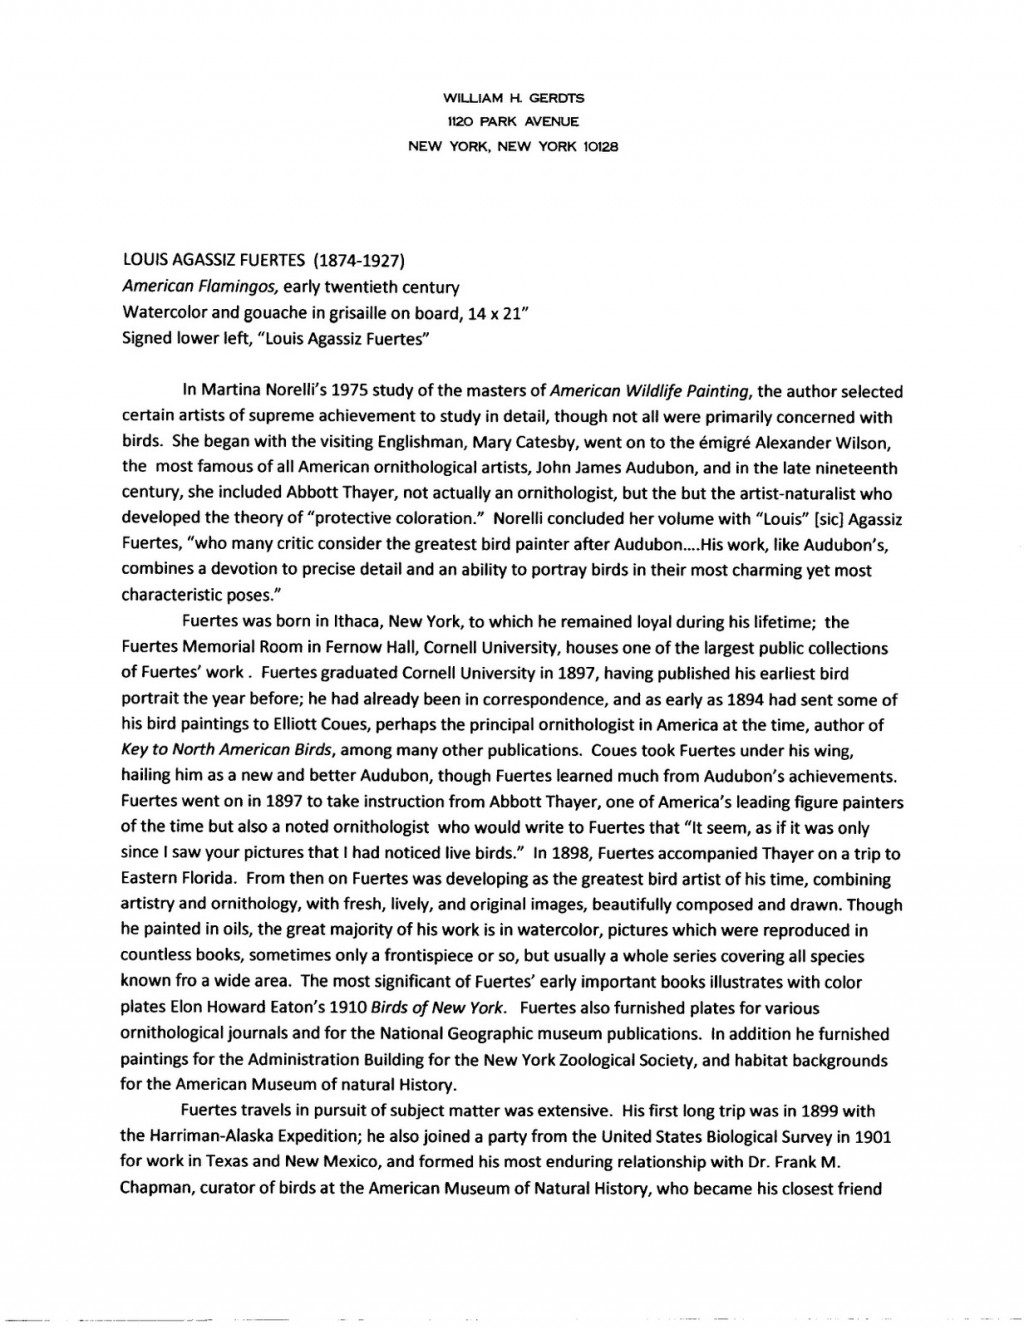 018 Osteopathic Medical School Essay Sample Example Awful Large